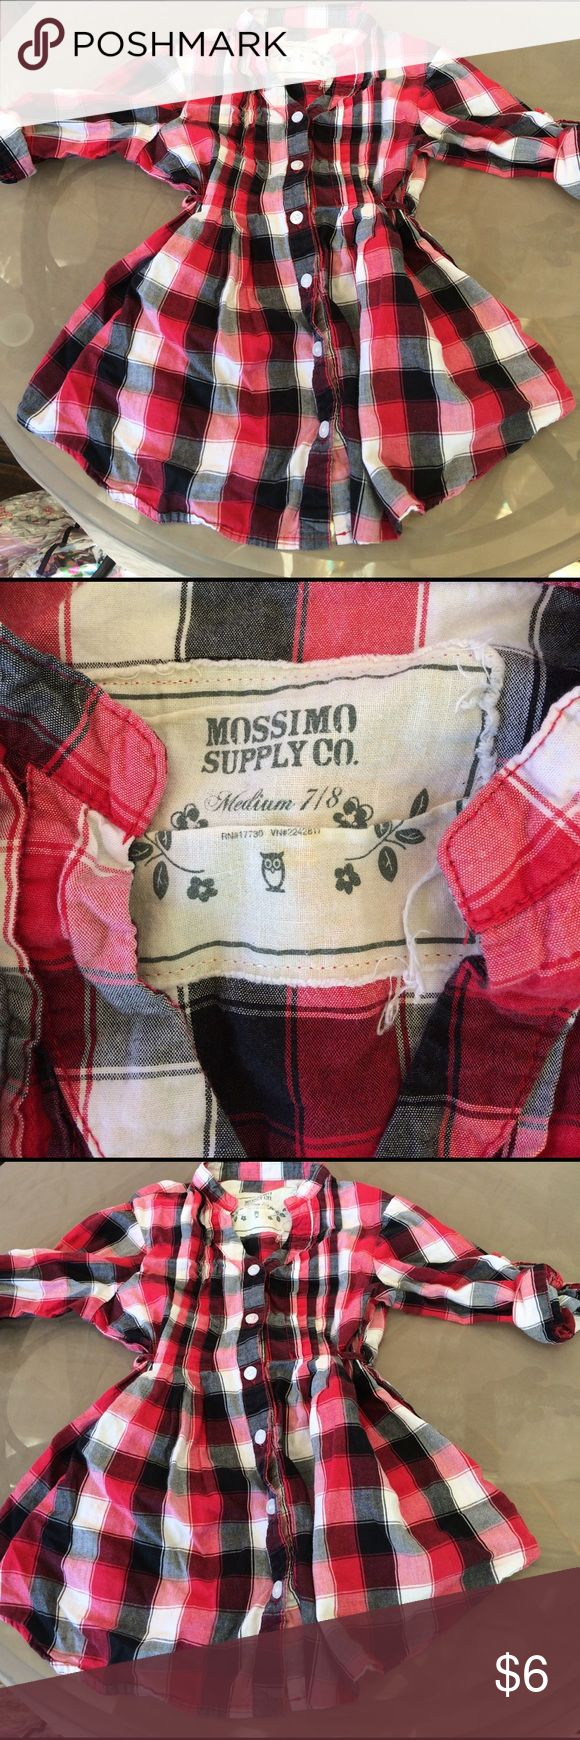 Red black & white half sleeve plaid shirt Really cute little girls plaid shirt size medium or 7/8 . Never warn. Make offer Mossimo Supply Co. Shirts & Tops Button Down Shirts